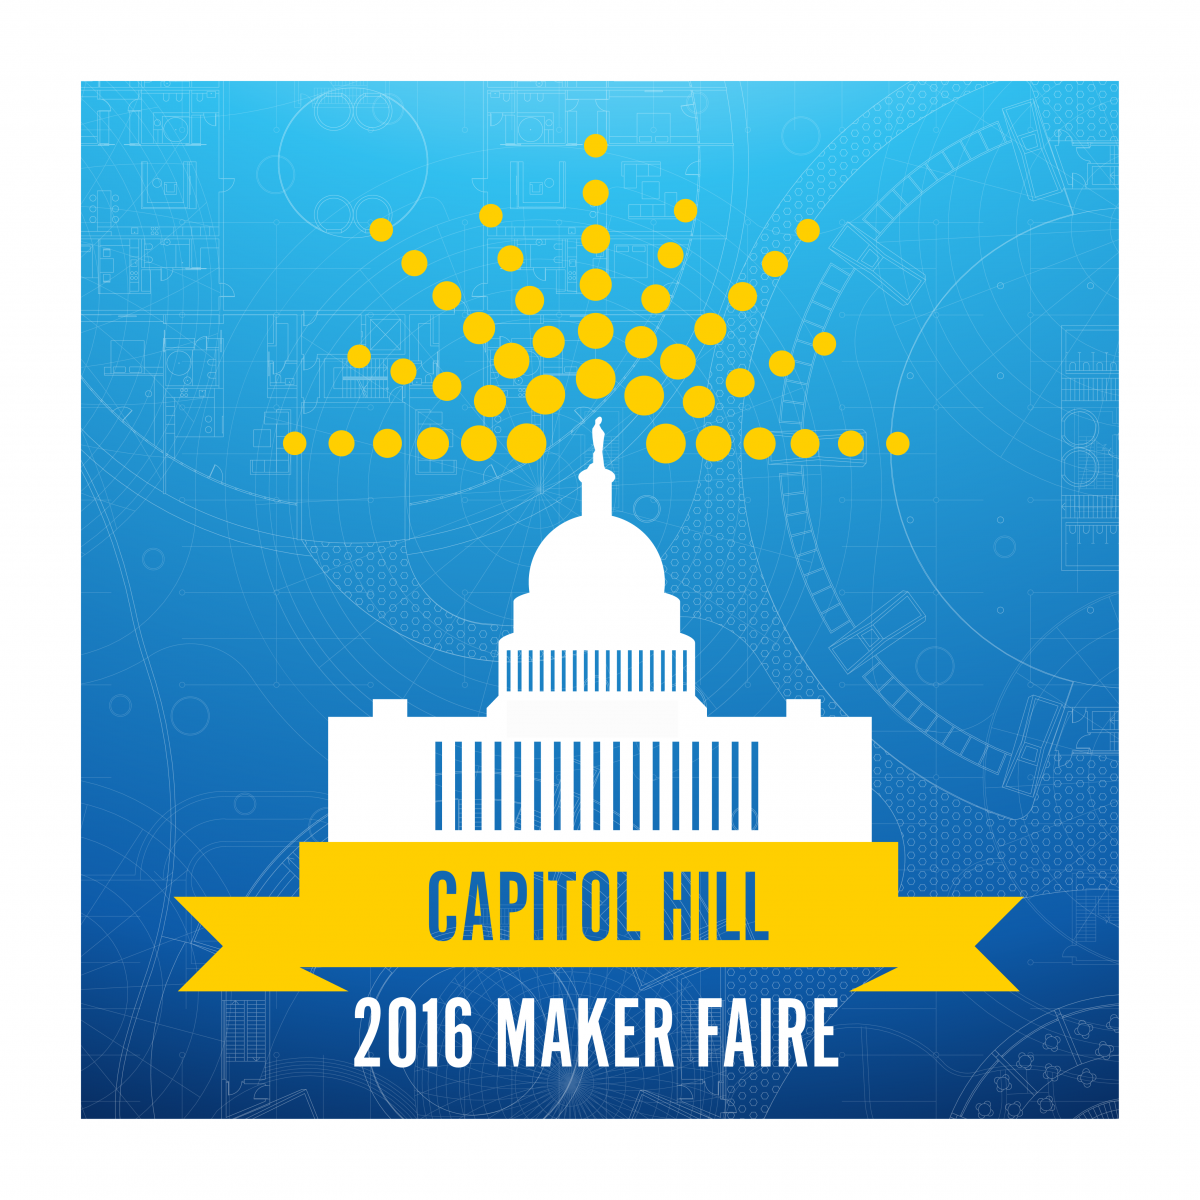 Capitol Hill 2016 Maker Faire